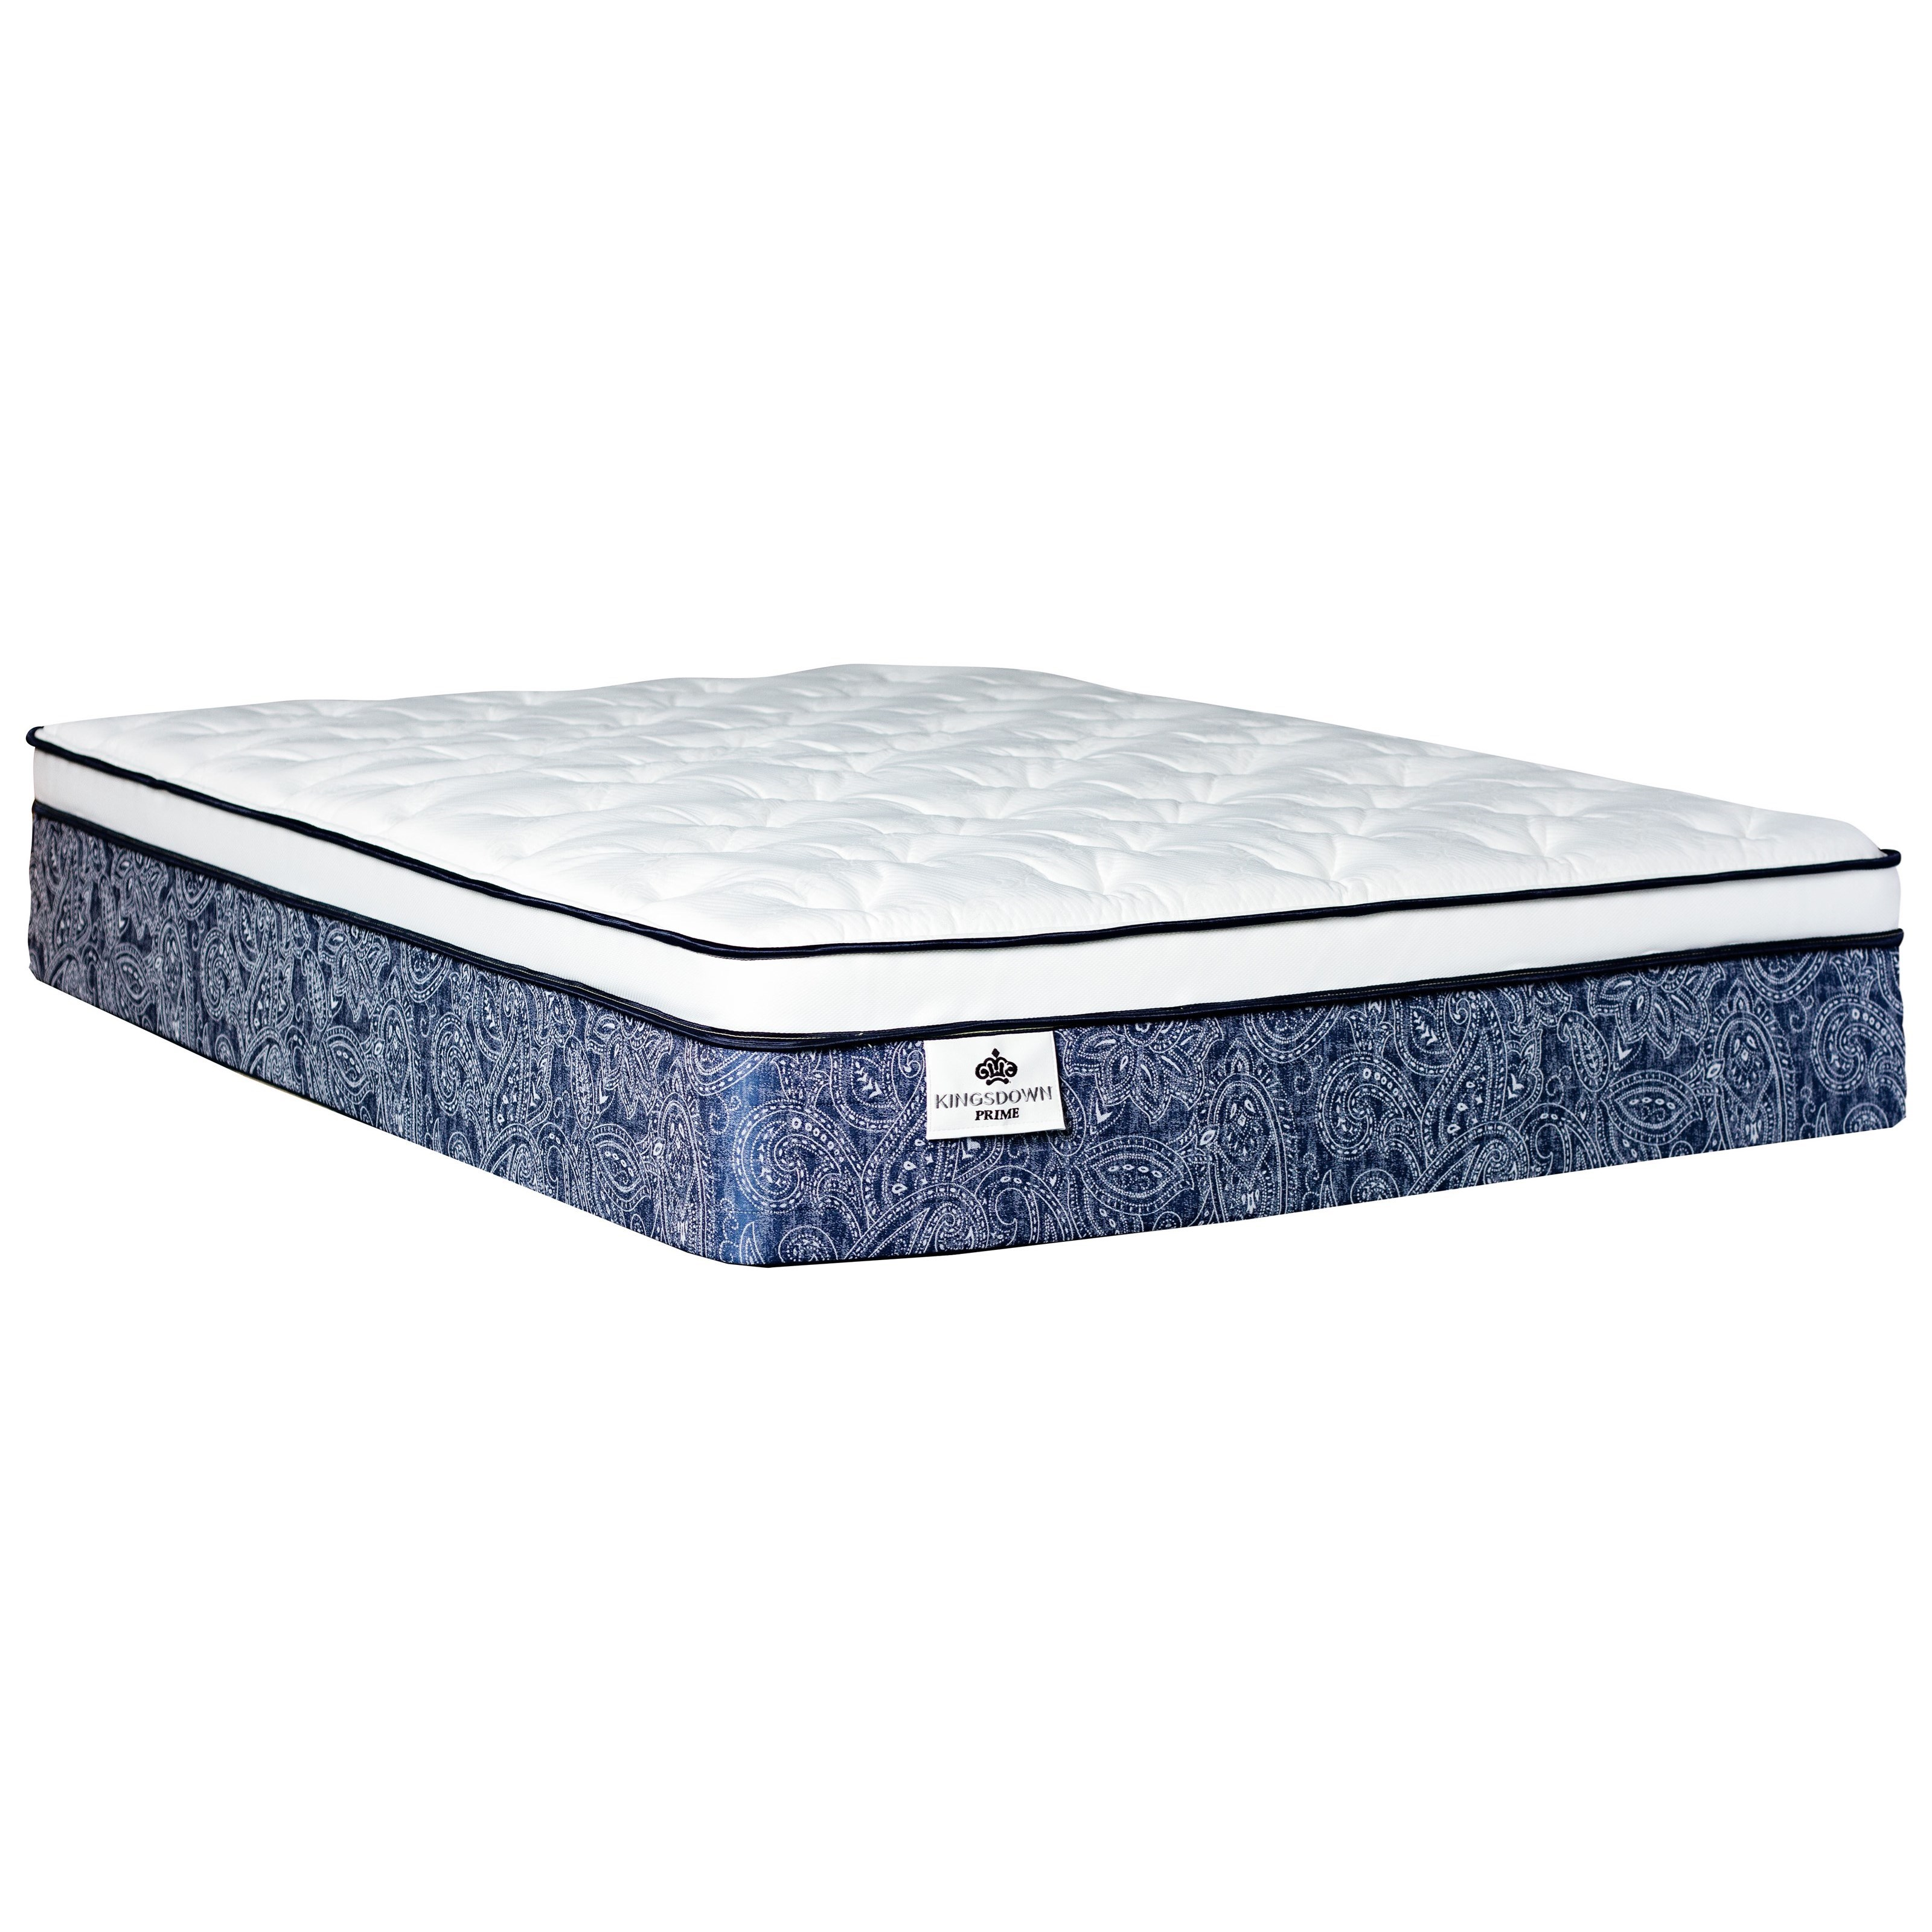 "Belcourt ET Twin XL 13 1/2"" Pocketed Coil Mattress by Kingsdown at Baer's Furniture"